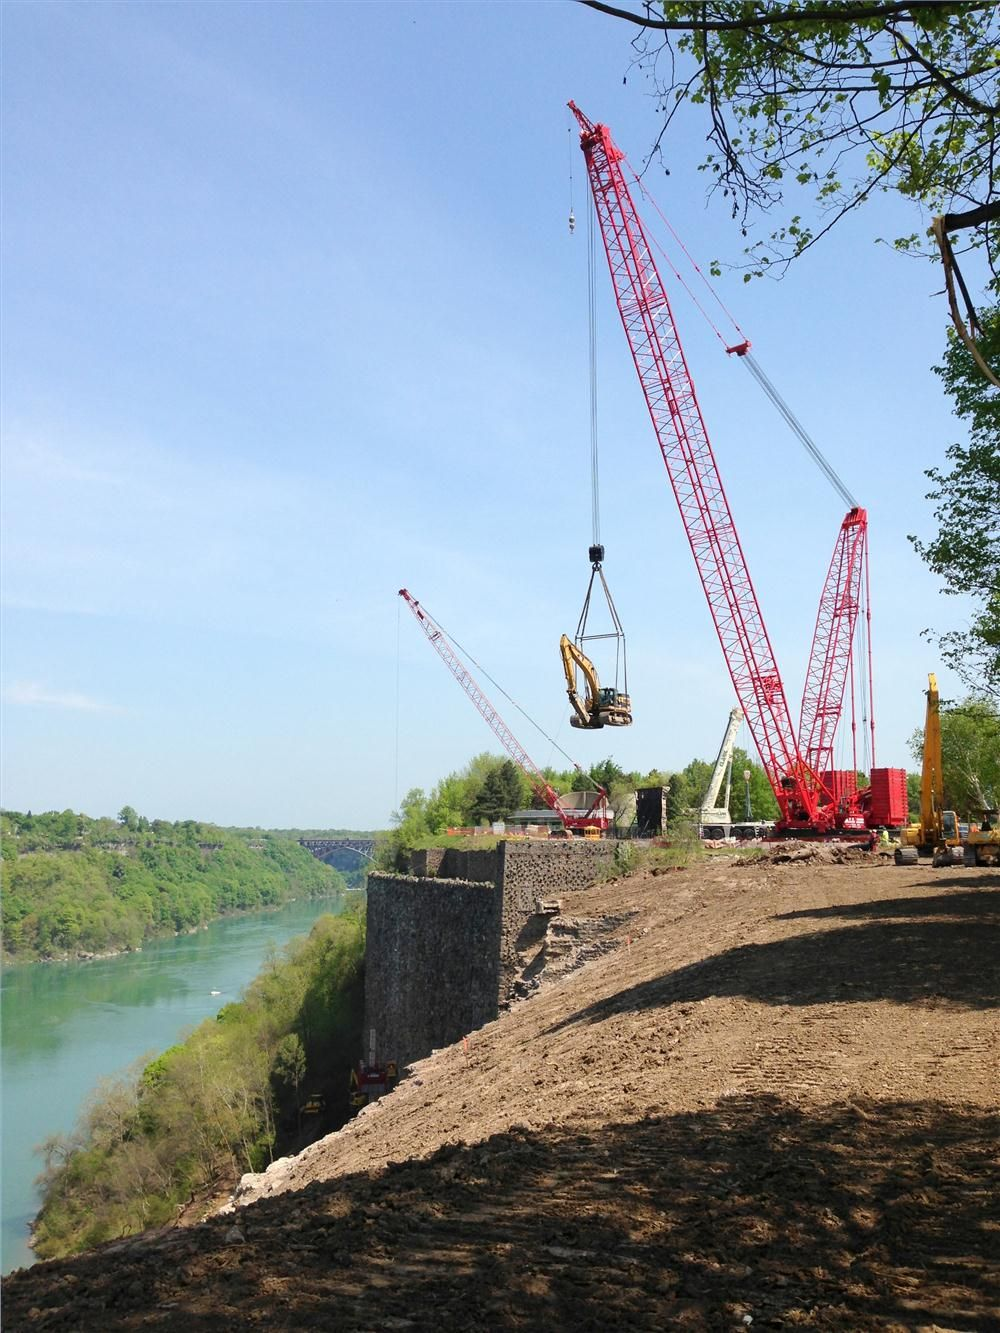 Configured with a 225-ft. (69 m) boom, the crane was situated within working distance of the top of the gorge and effortlessly lifted and lowered heavy equipment to the work site below.